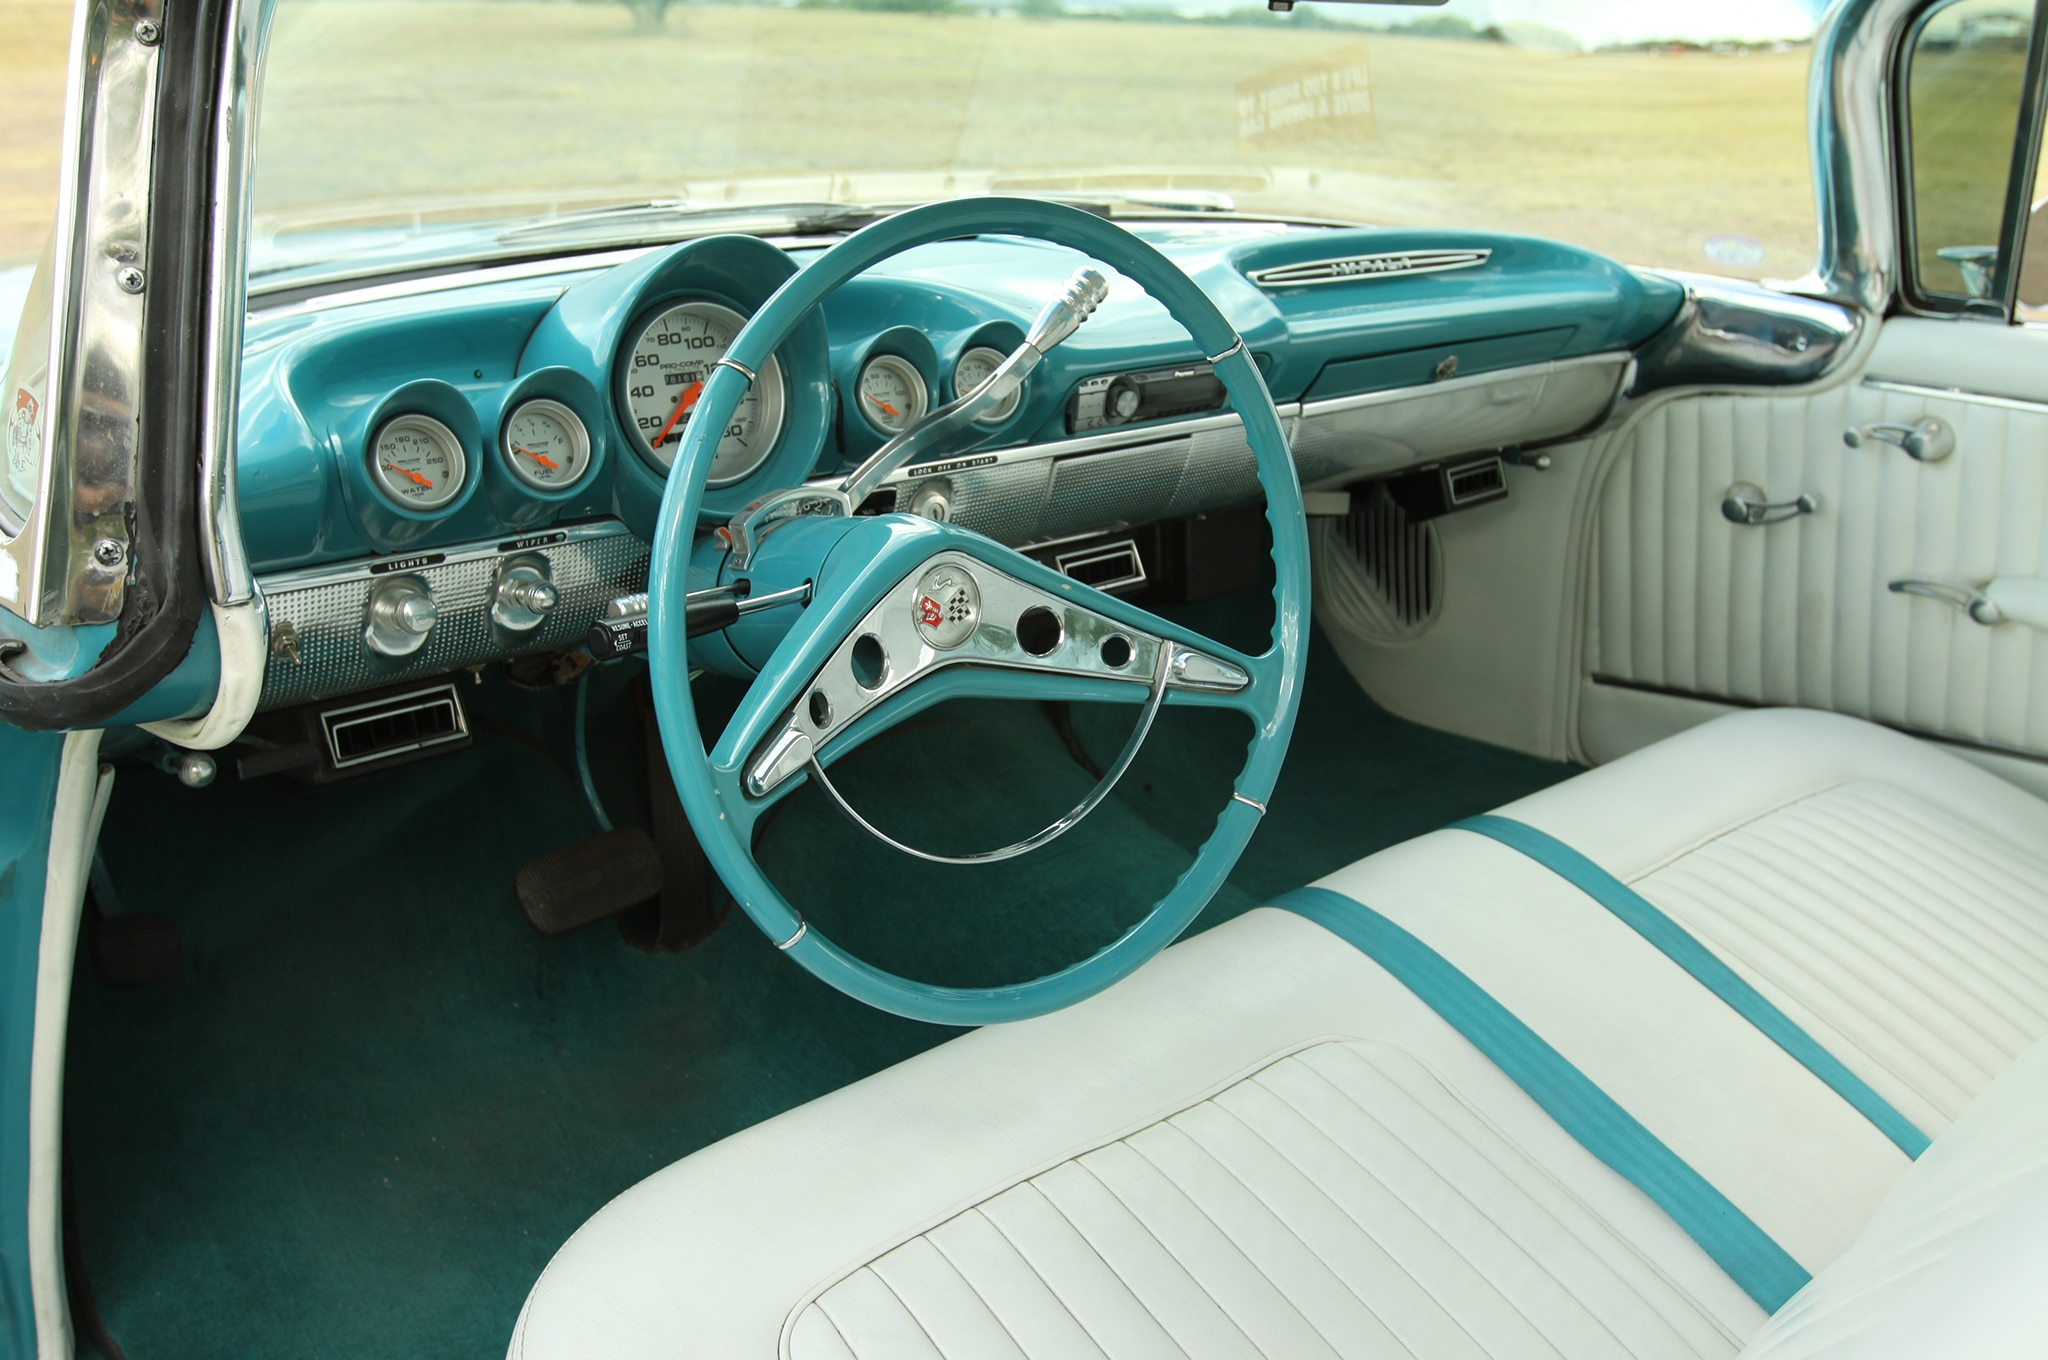 chevy radio 57 palm tree parts diagram how to add nostalgic dashboard customizing tricks - hot rod network